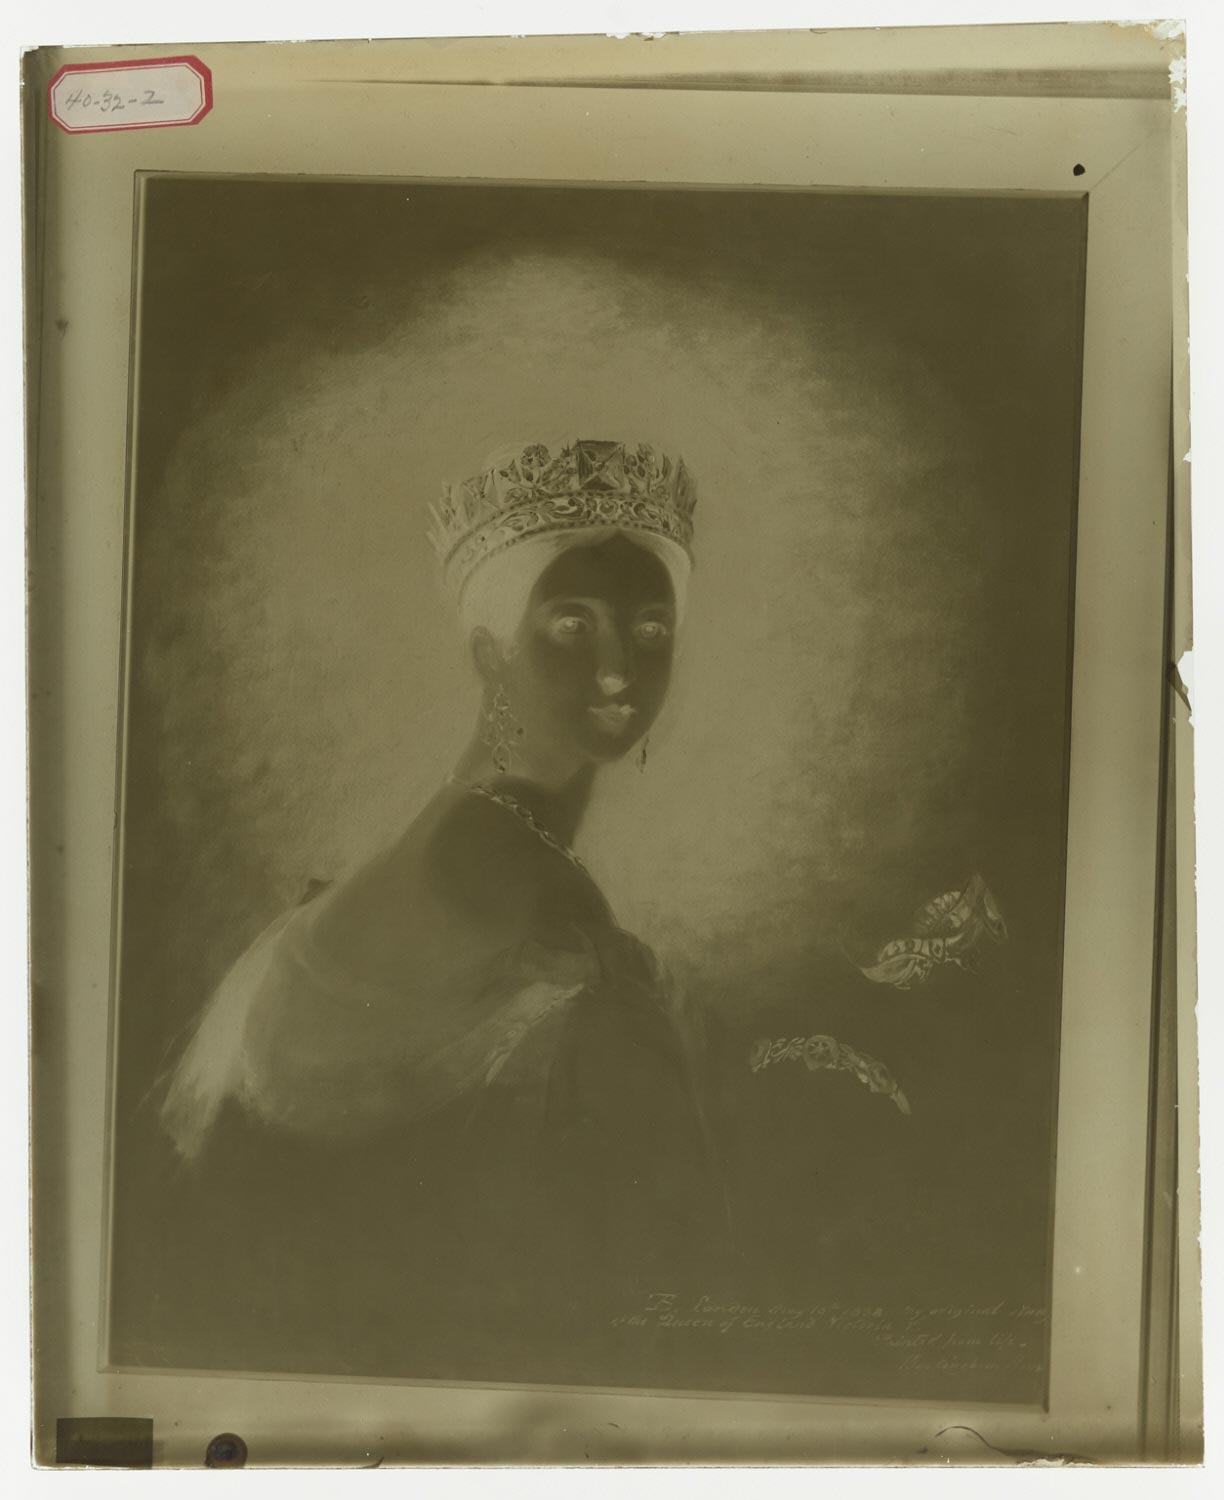 Photographic Plate of Queen Victoria